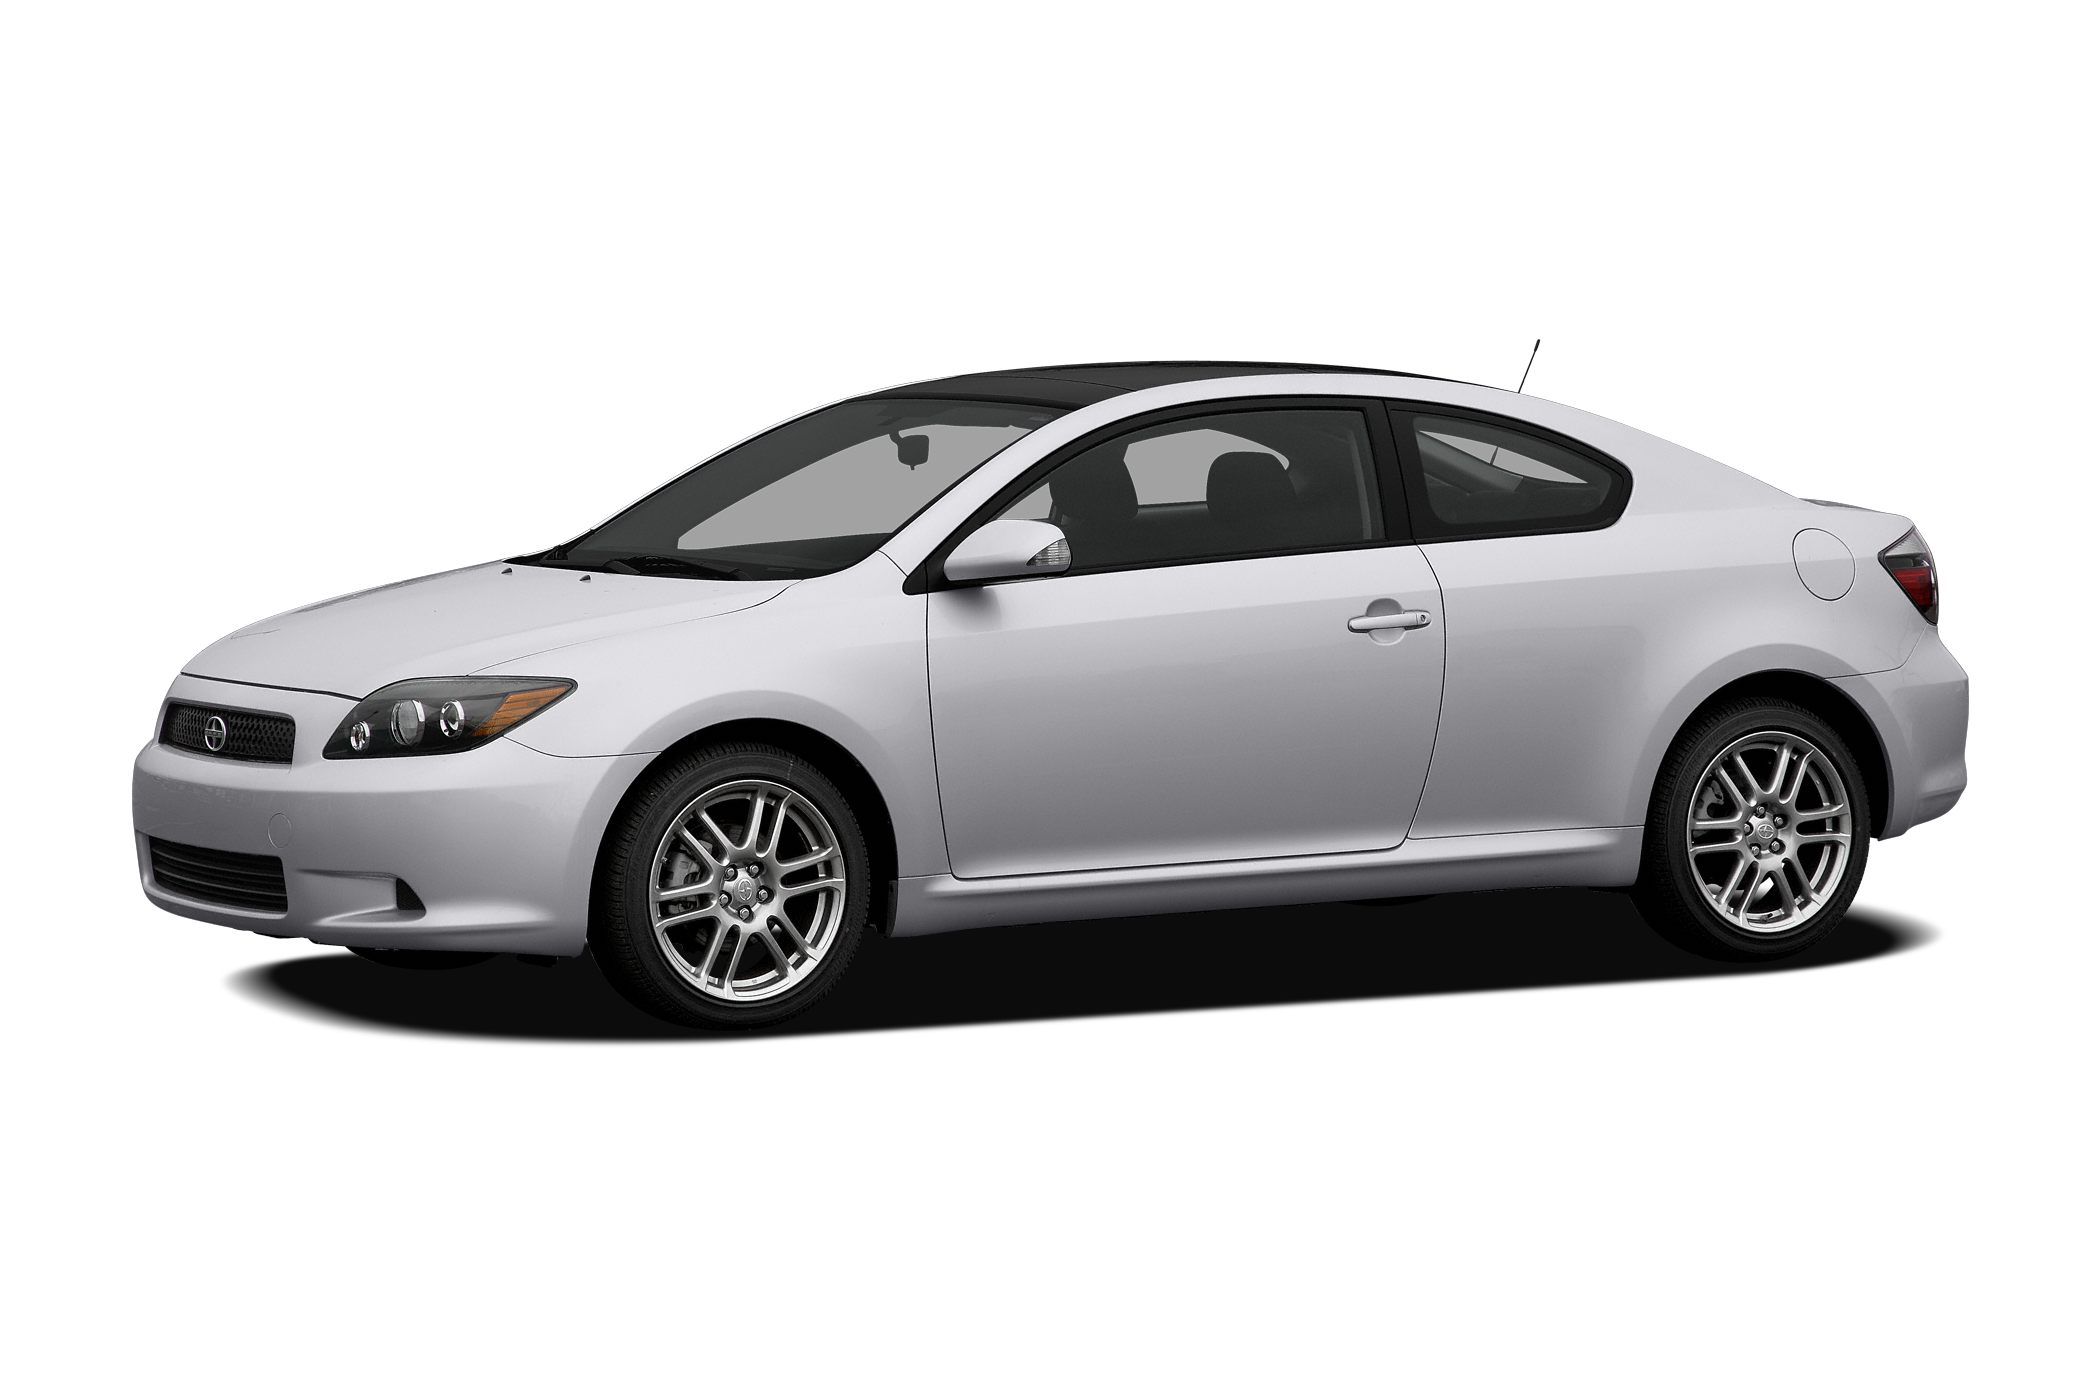 2008 Scion TC Coupe for sale in Waterbury for $0 with 90,507 miles